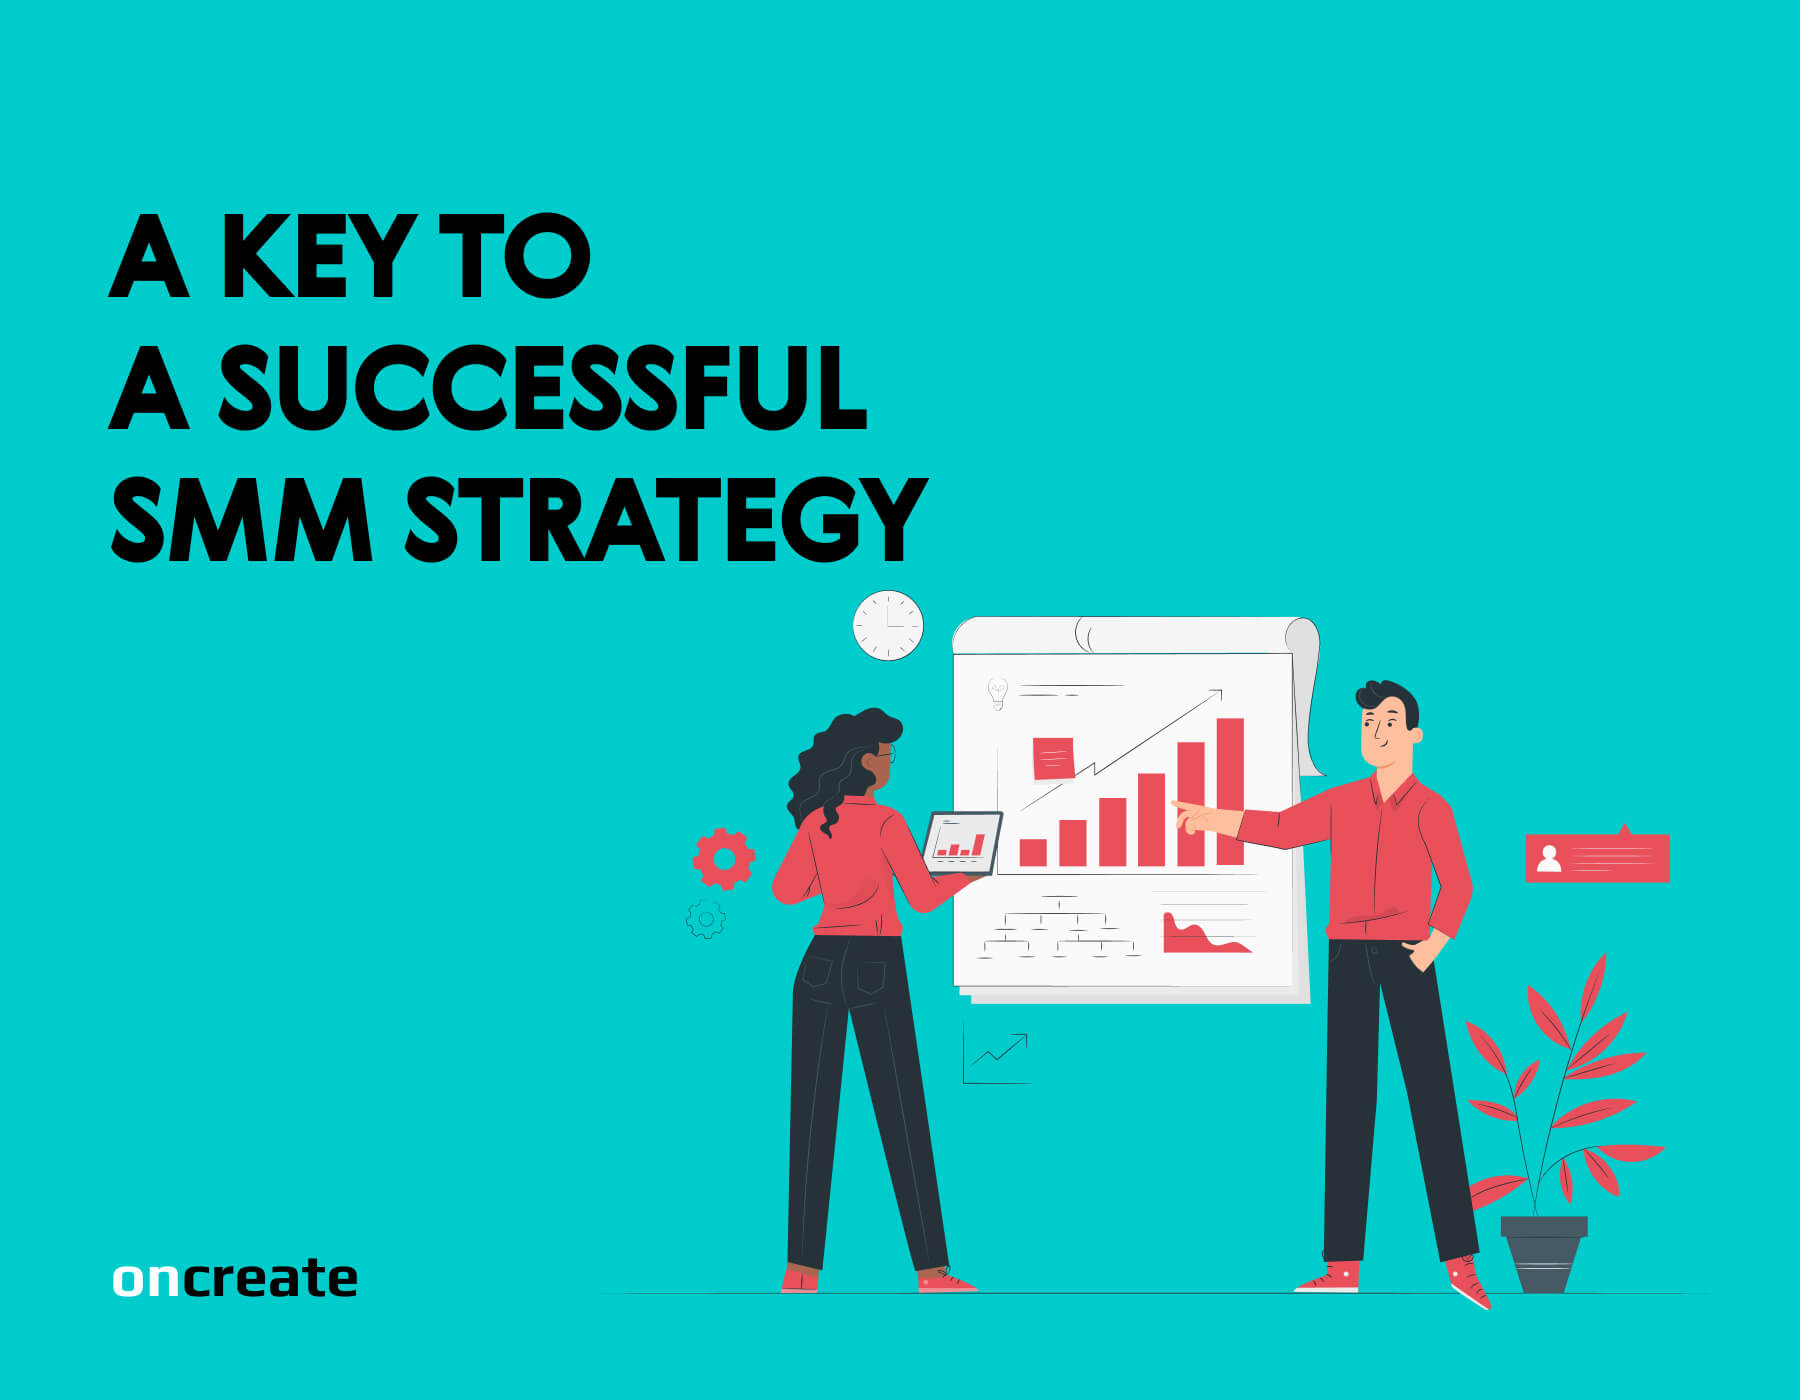 A Key to a Successful SMM Strategy